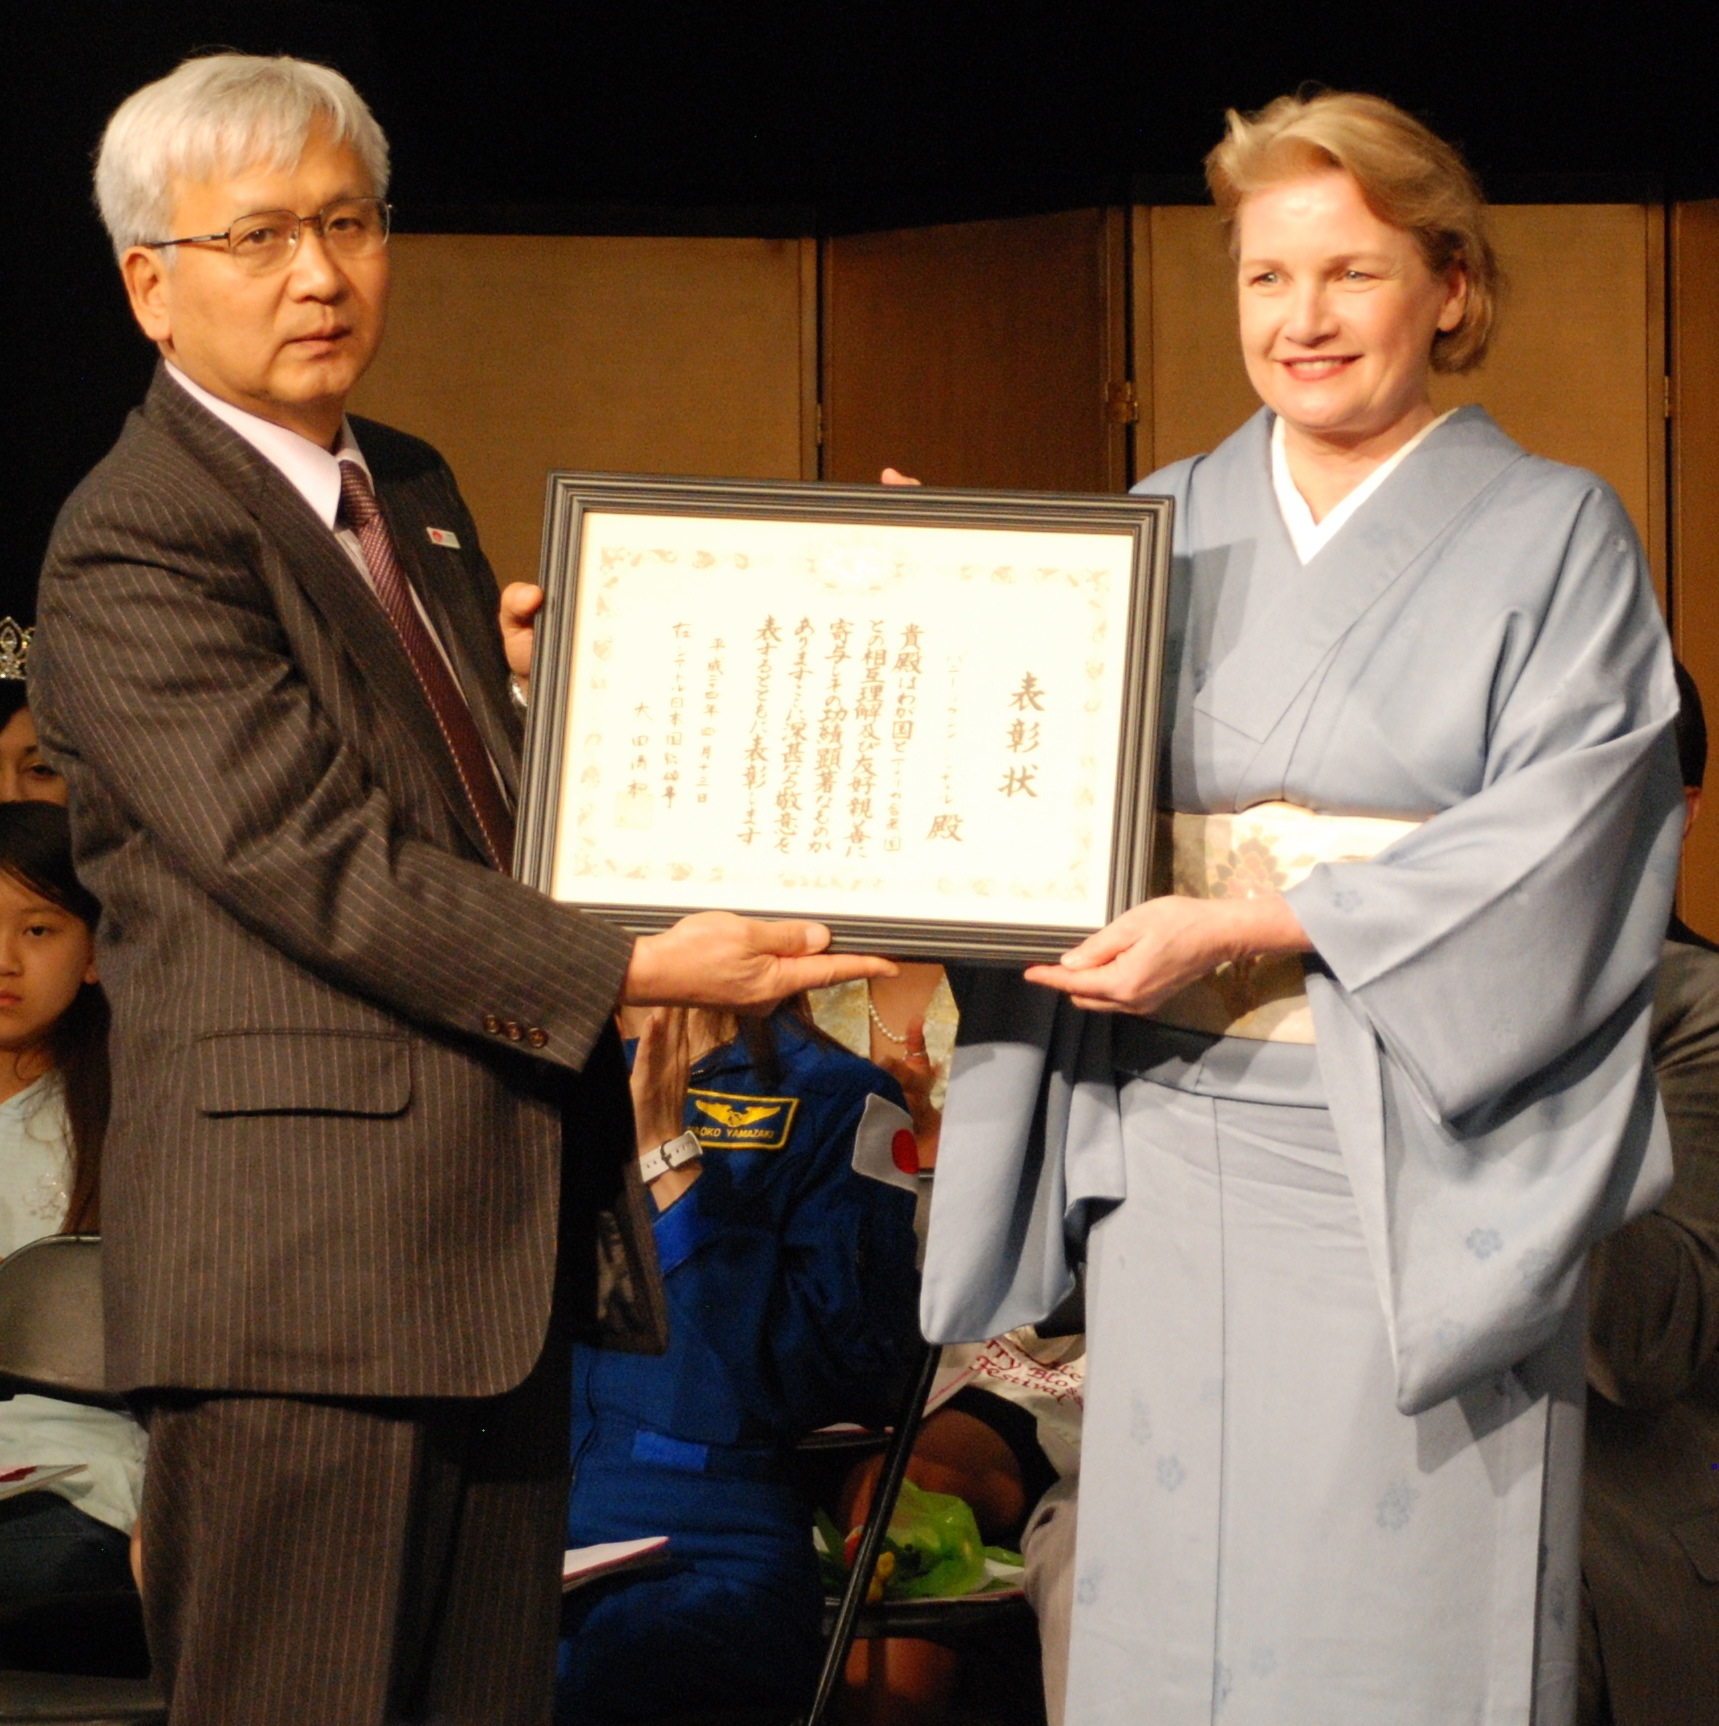 In 2012, Consul General Kiyokazu Ota, Consulate General of Japan in Seattle, presented Ms. Mitchell the Commemorative Award for her work in promotingunderstanding and appreciation of Japanese culture among the broader American community.